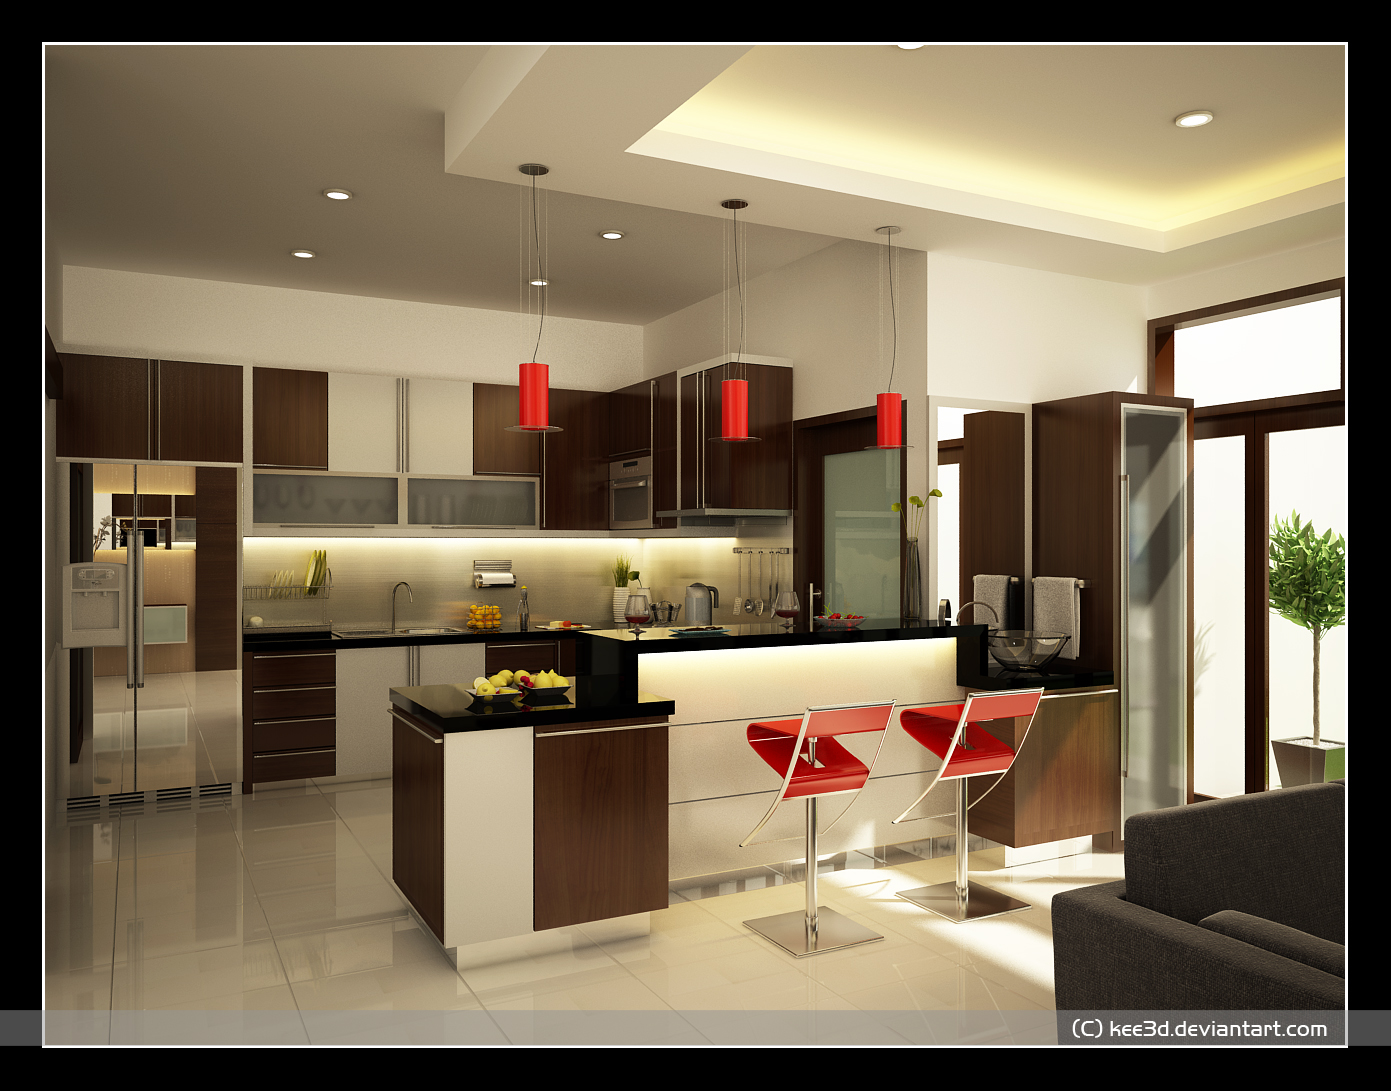 Http Www Home Designing Com 2013 09 Kitchen Design Ideas Set 2